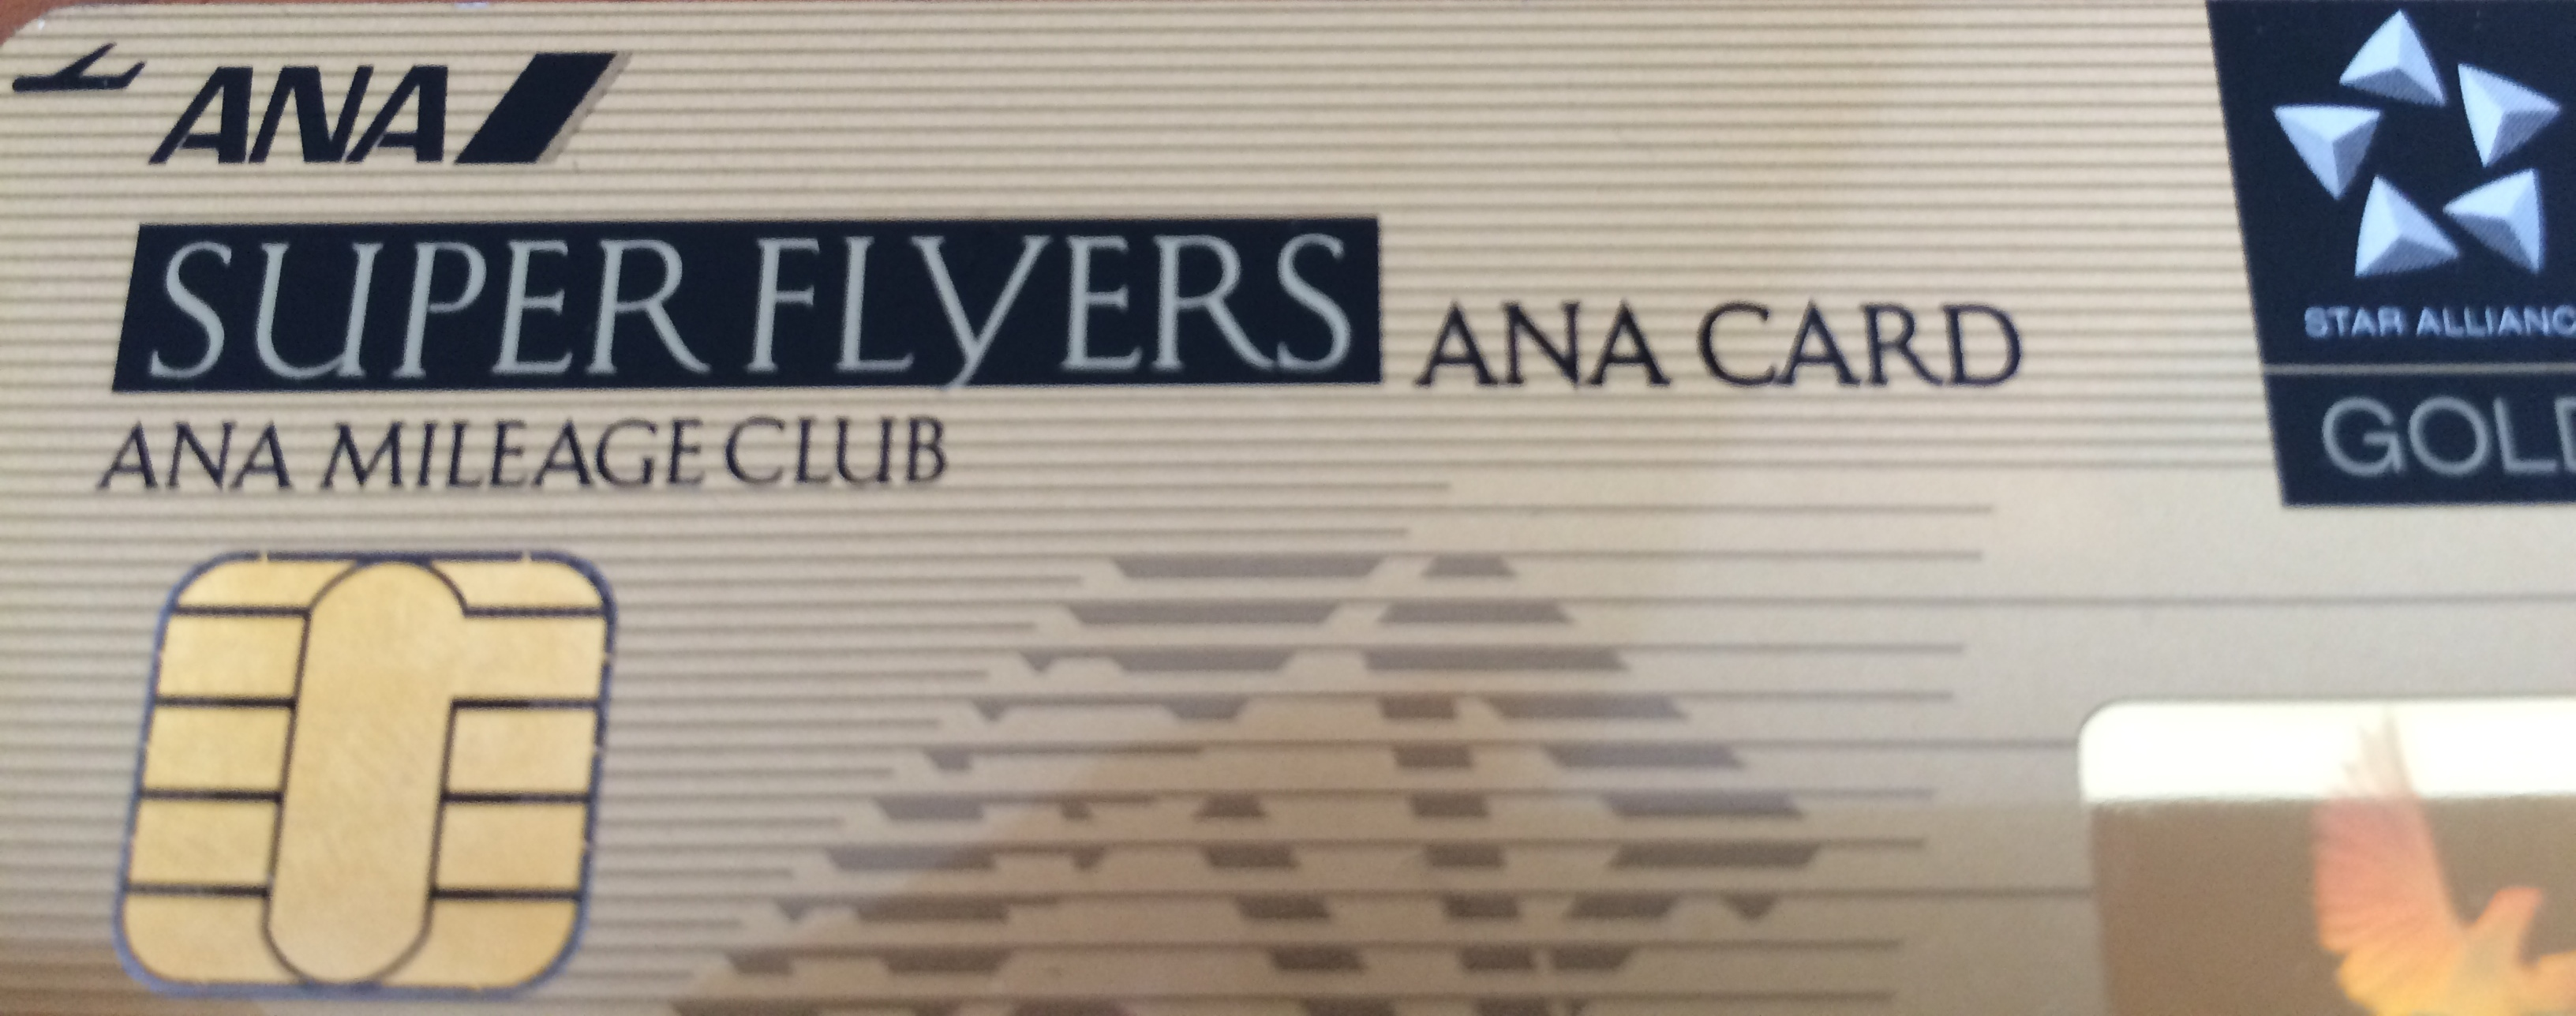 ANA SUPER FLYERS CARD GOLD